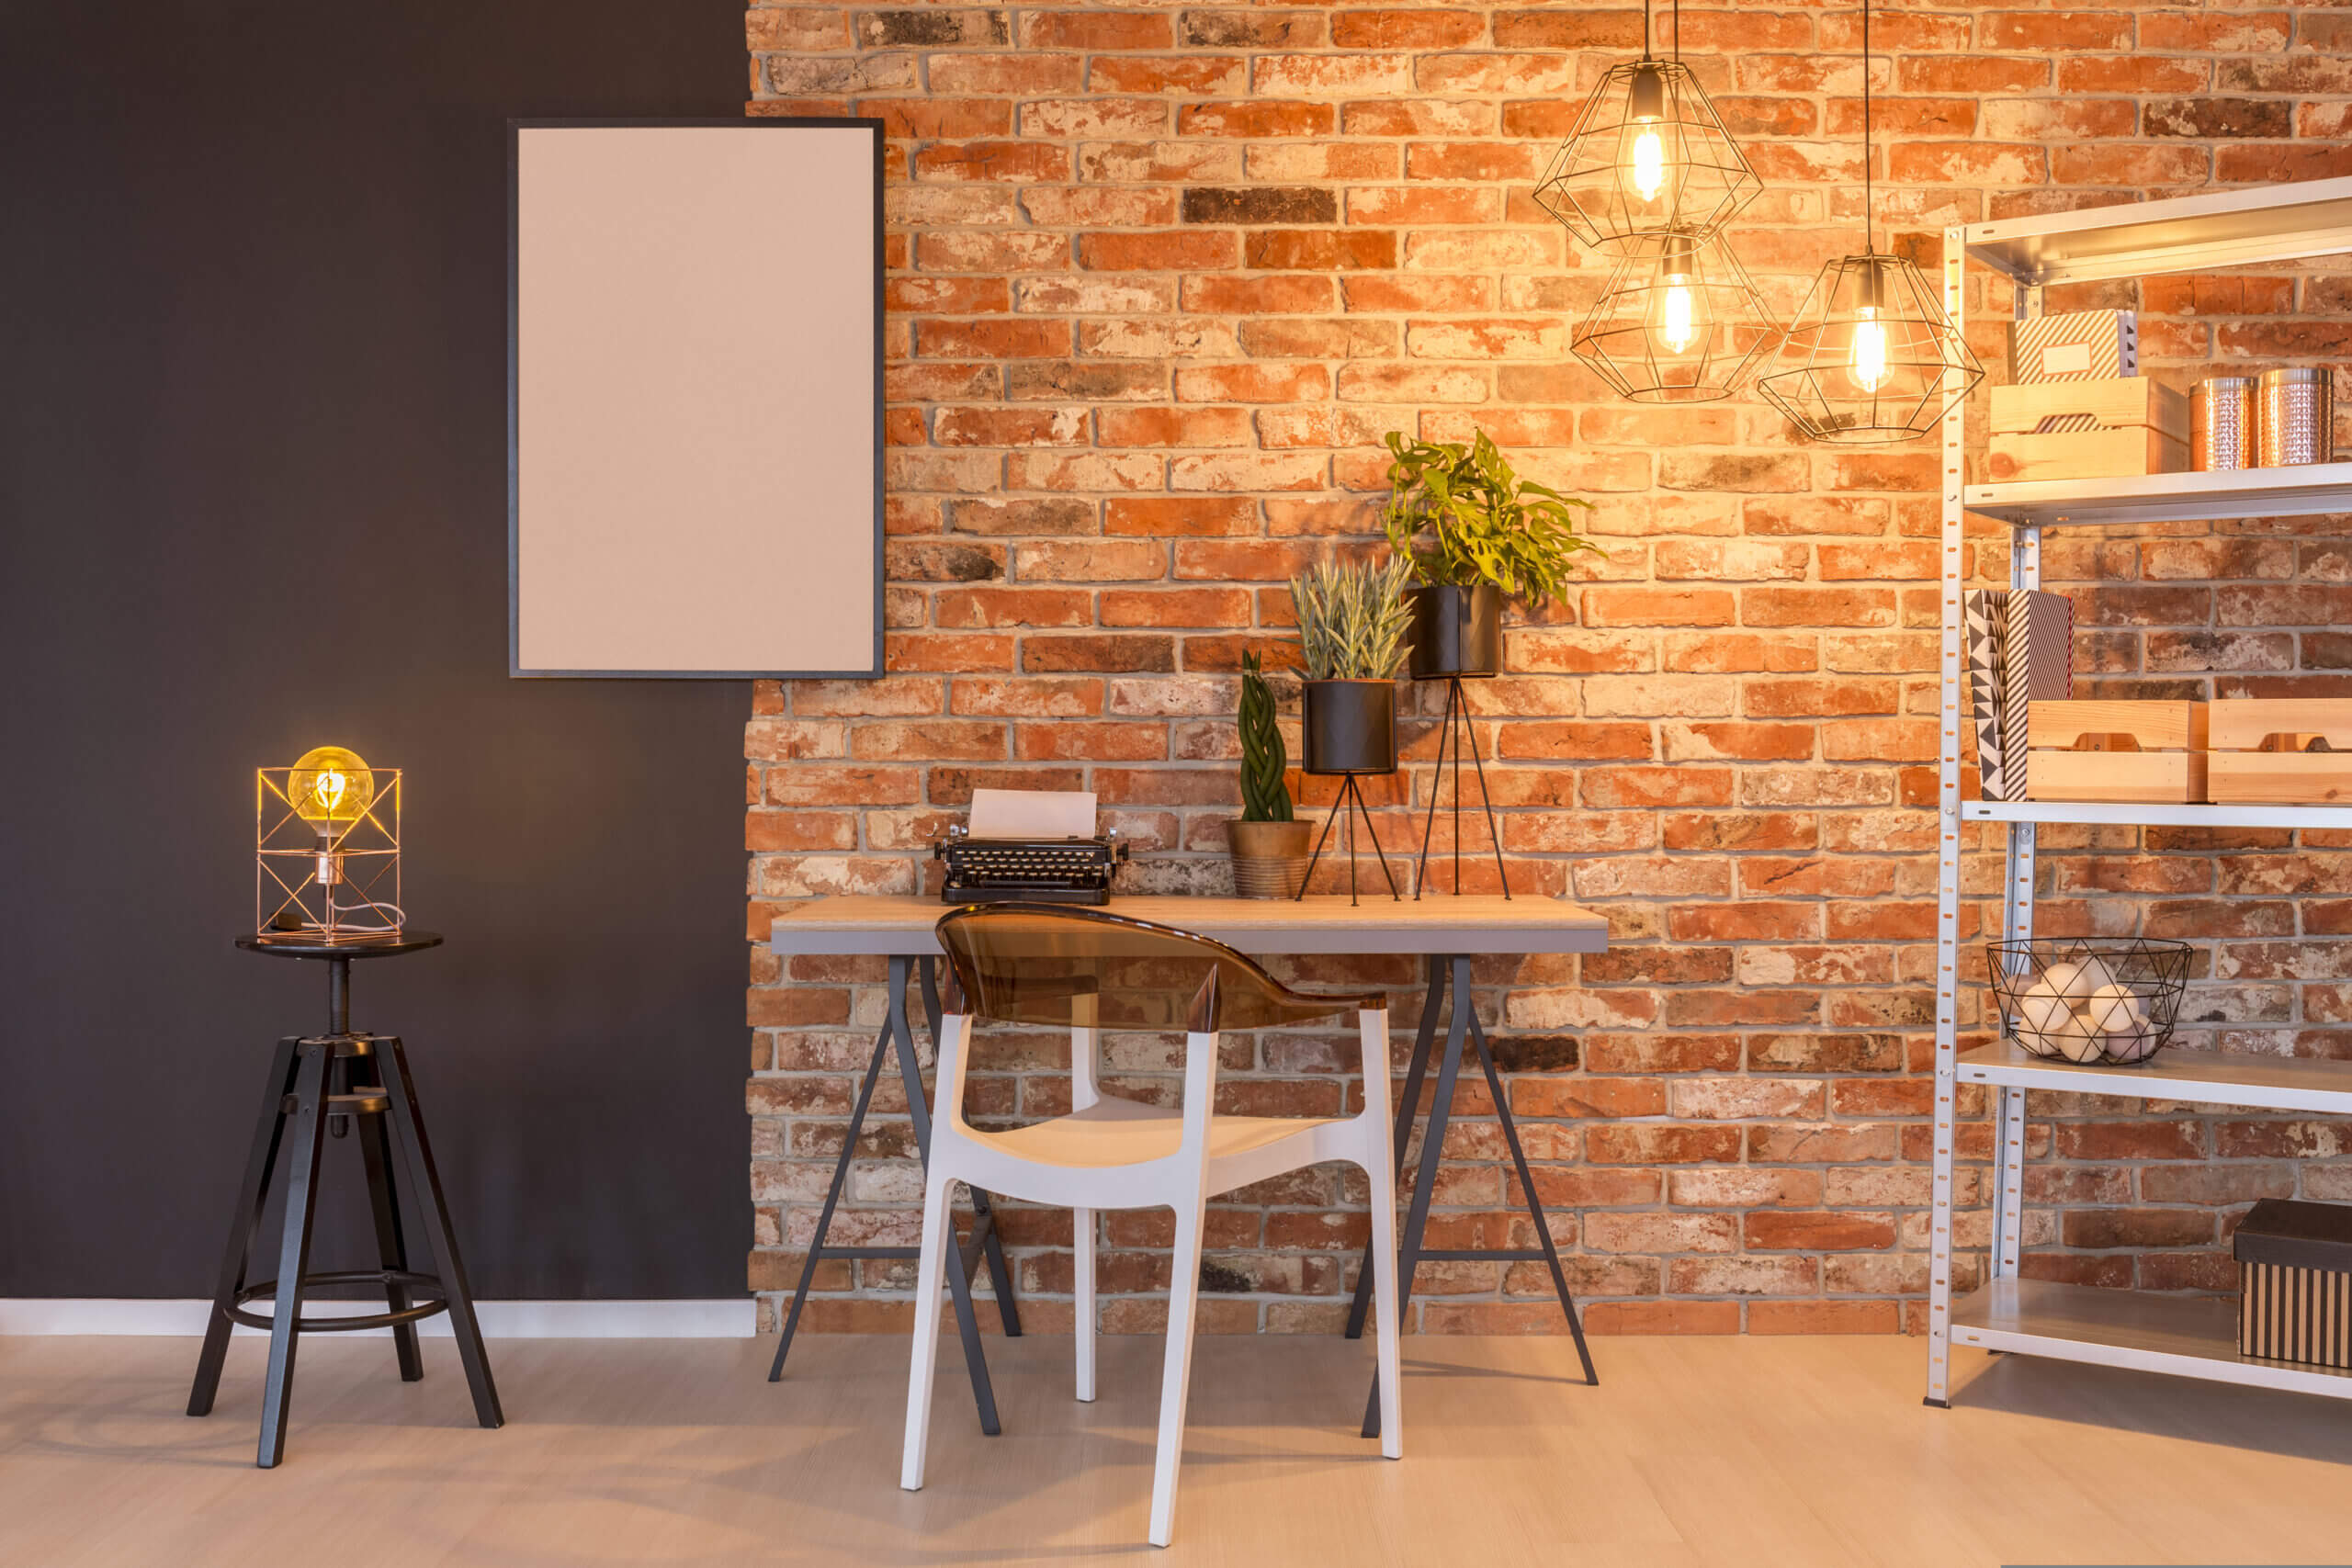 Working Station with Brick Wall